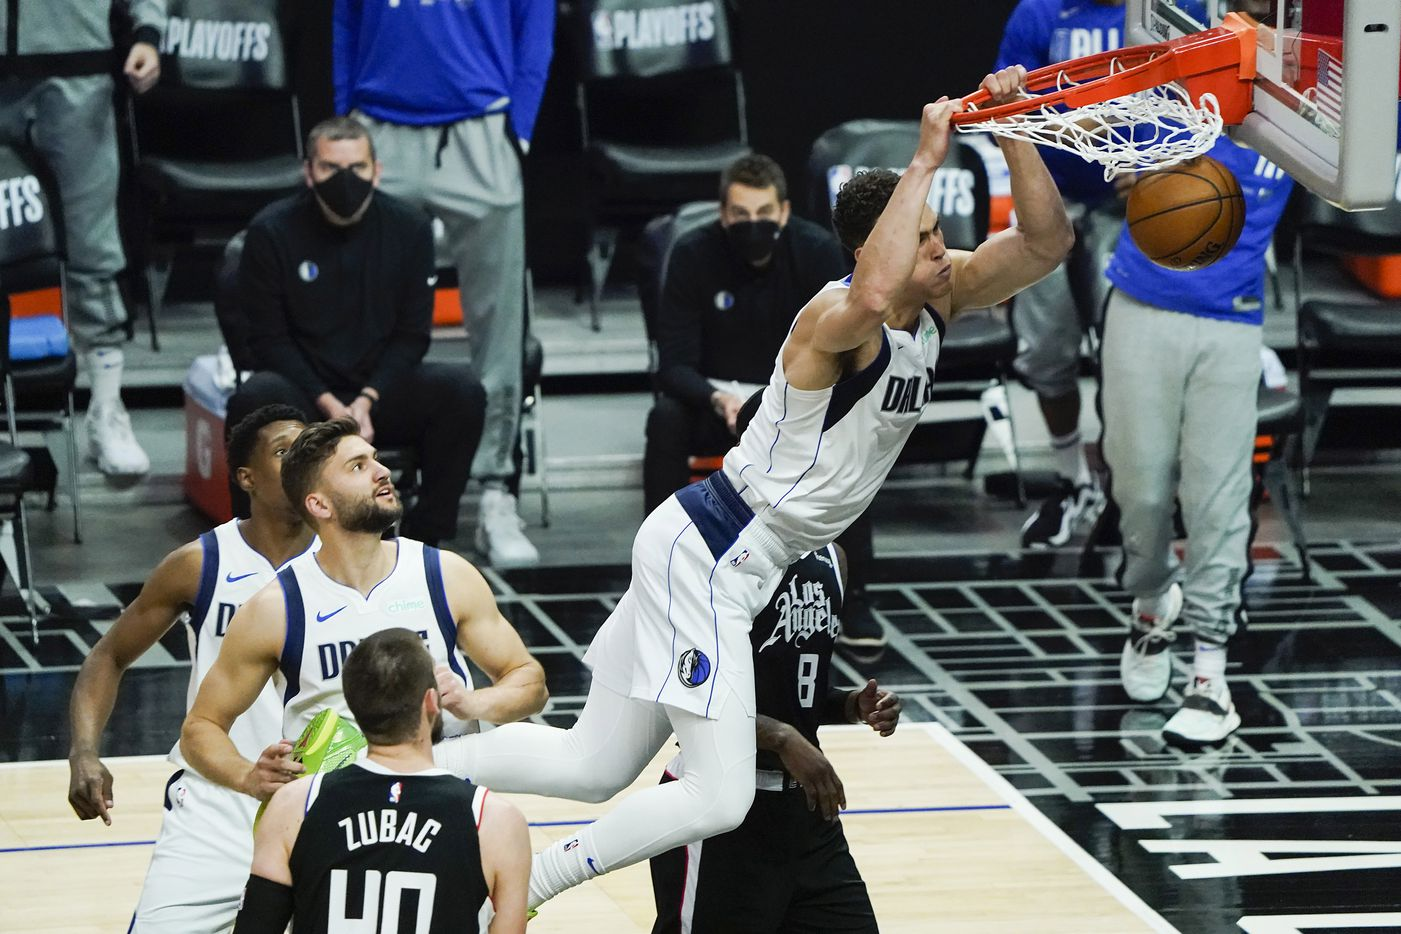 Dallas Mavericks center Dwight Powell (7) dunks the ball past LA Clippers forward Marcus Morris Sr. (8) and center Ivica Zubac (40) during the first half of an NBA playoff basketball game at the Staples Center on Wednesday, June 2, 2021, in Los Angeles.  (Smiley N. Pool/The Dallas Morning News)